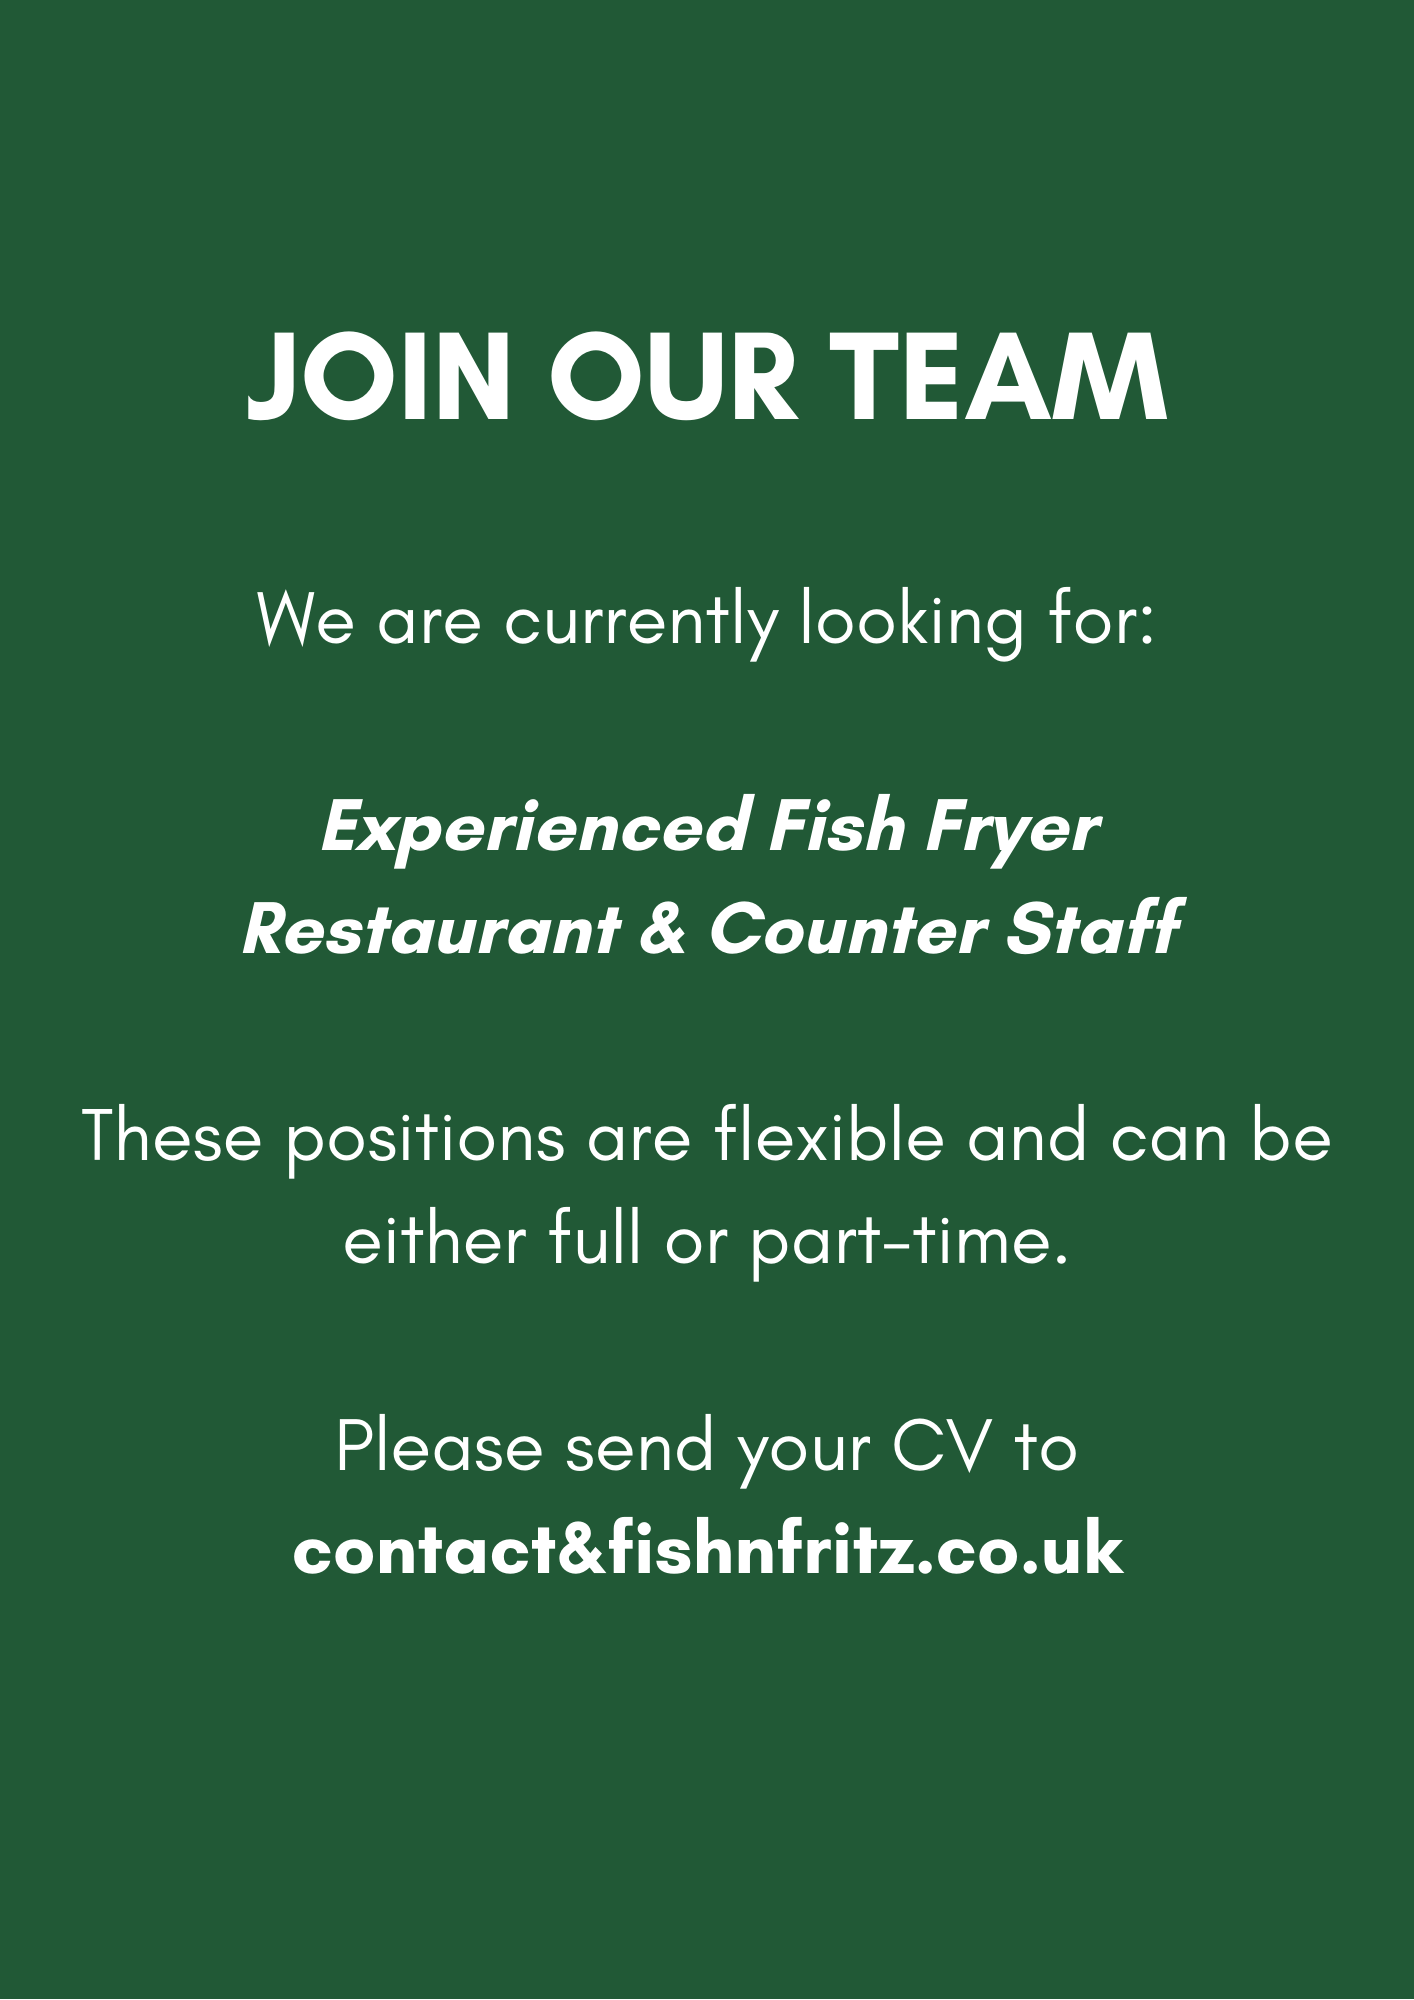 Fish 'n' Fritz are looking for team members